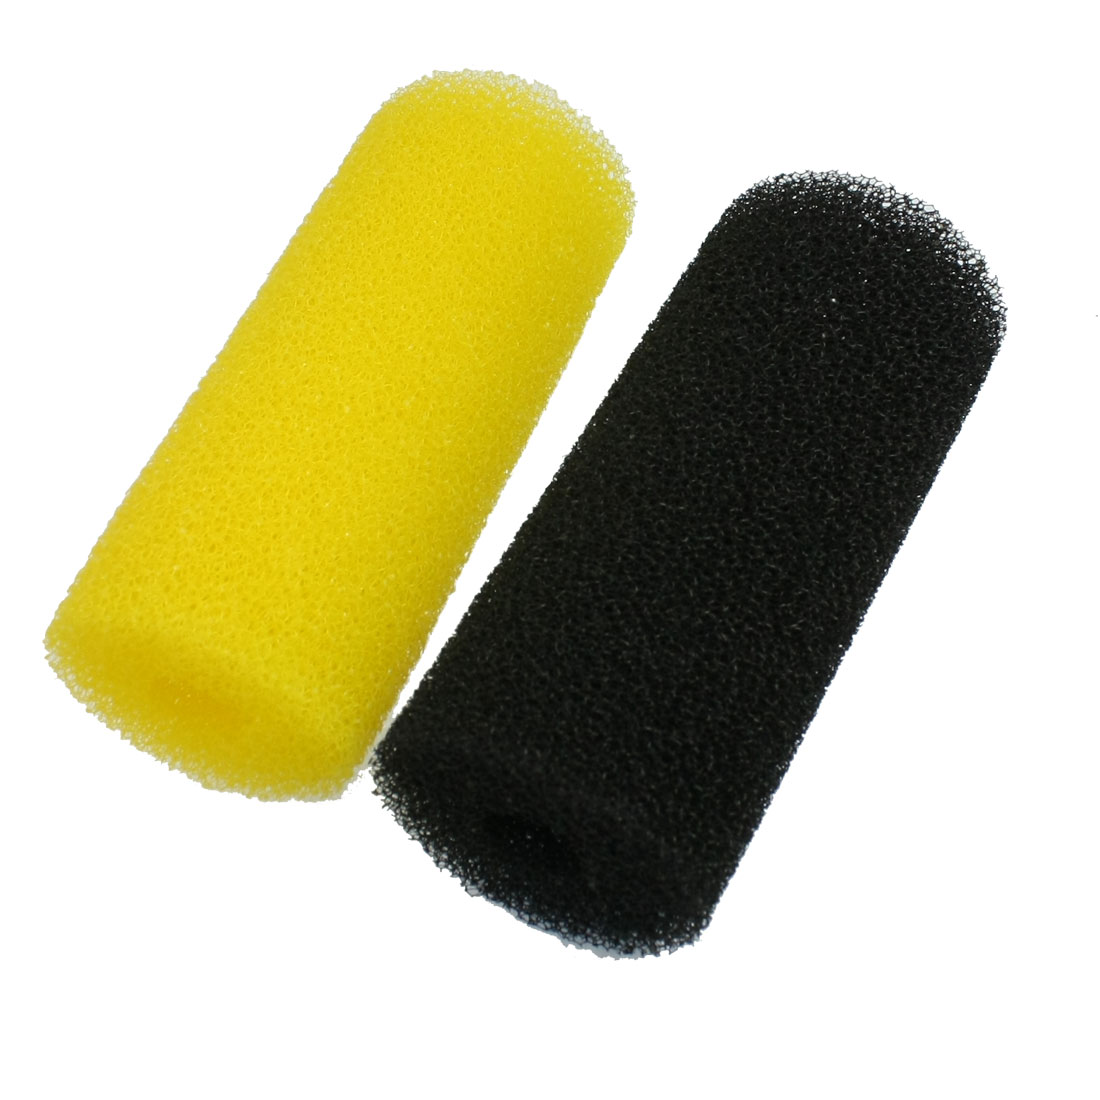 "5.9"" Fish Tank Water Cleaning Biochemical Filtration Filter Sponge Black Yellow 2 Pcs"